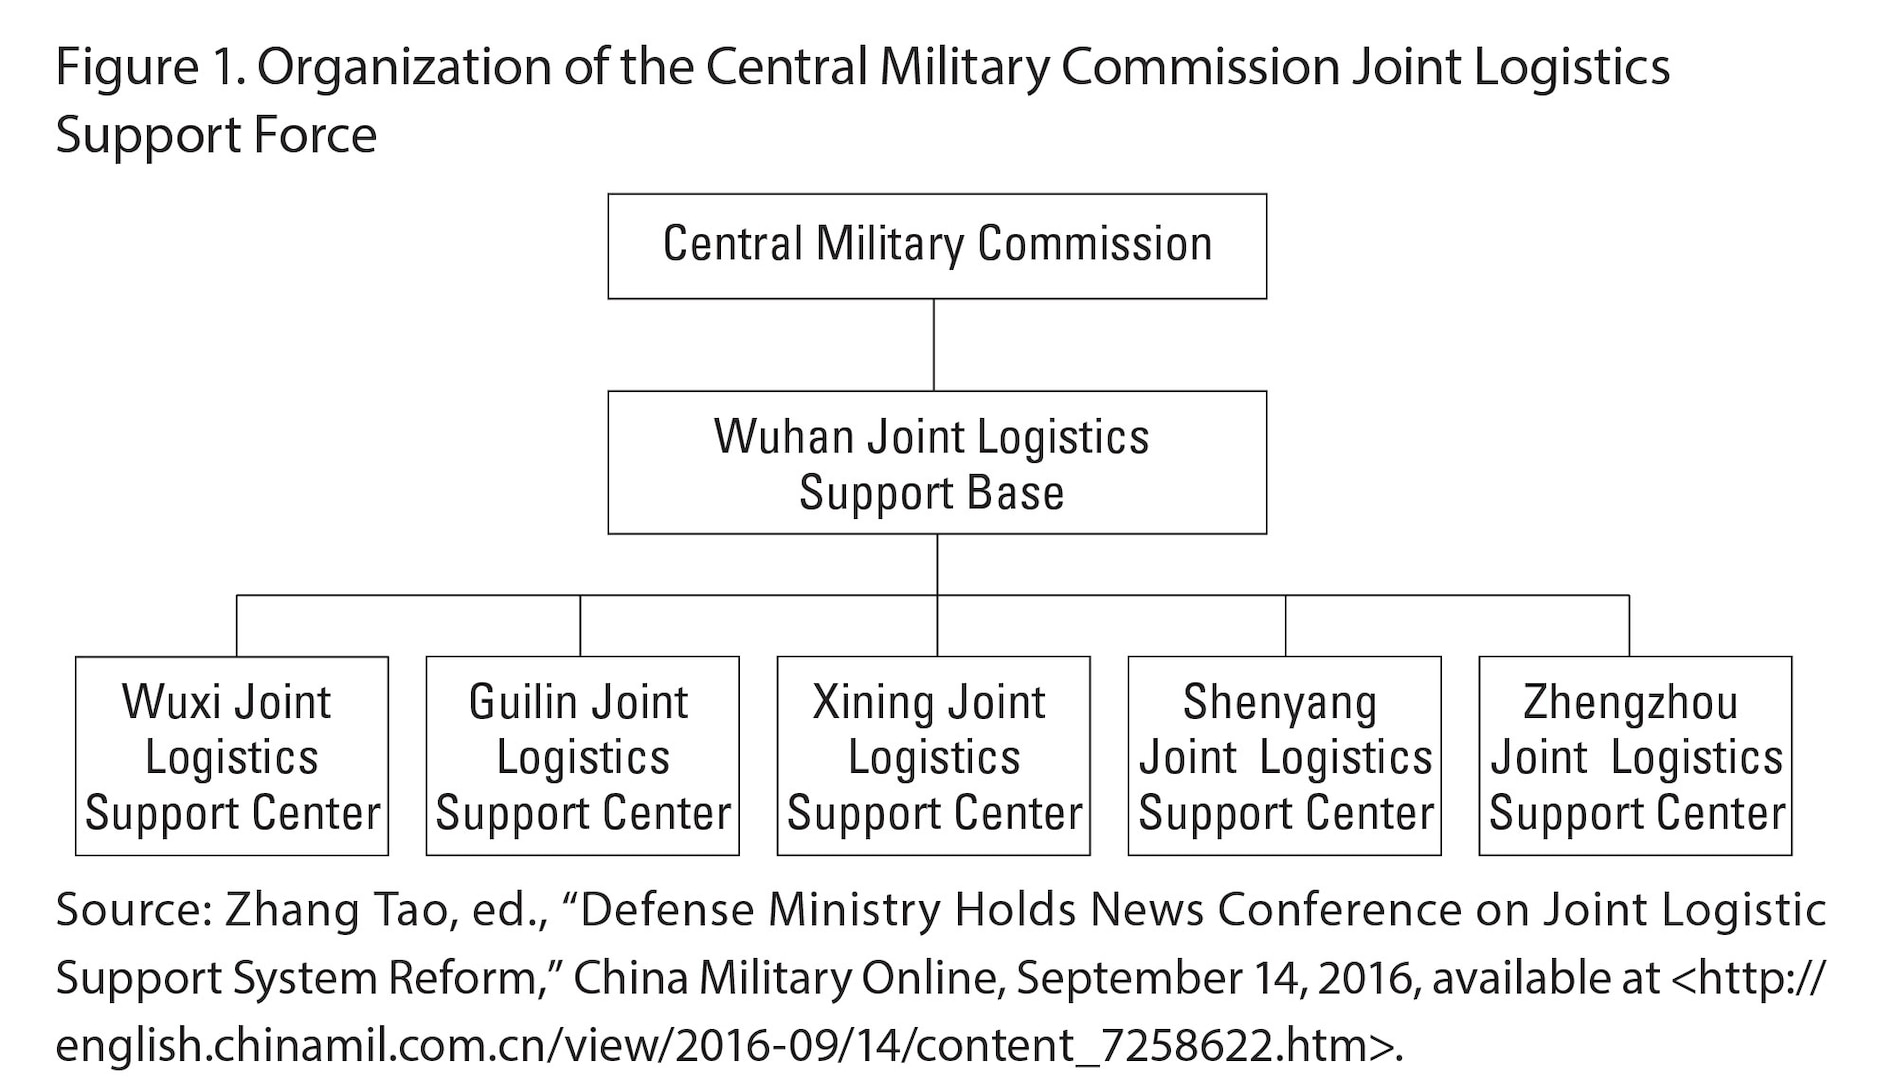 Figure 1. Organization of the Central Military Commission Joint Logistics Support Force